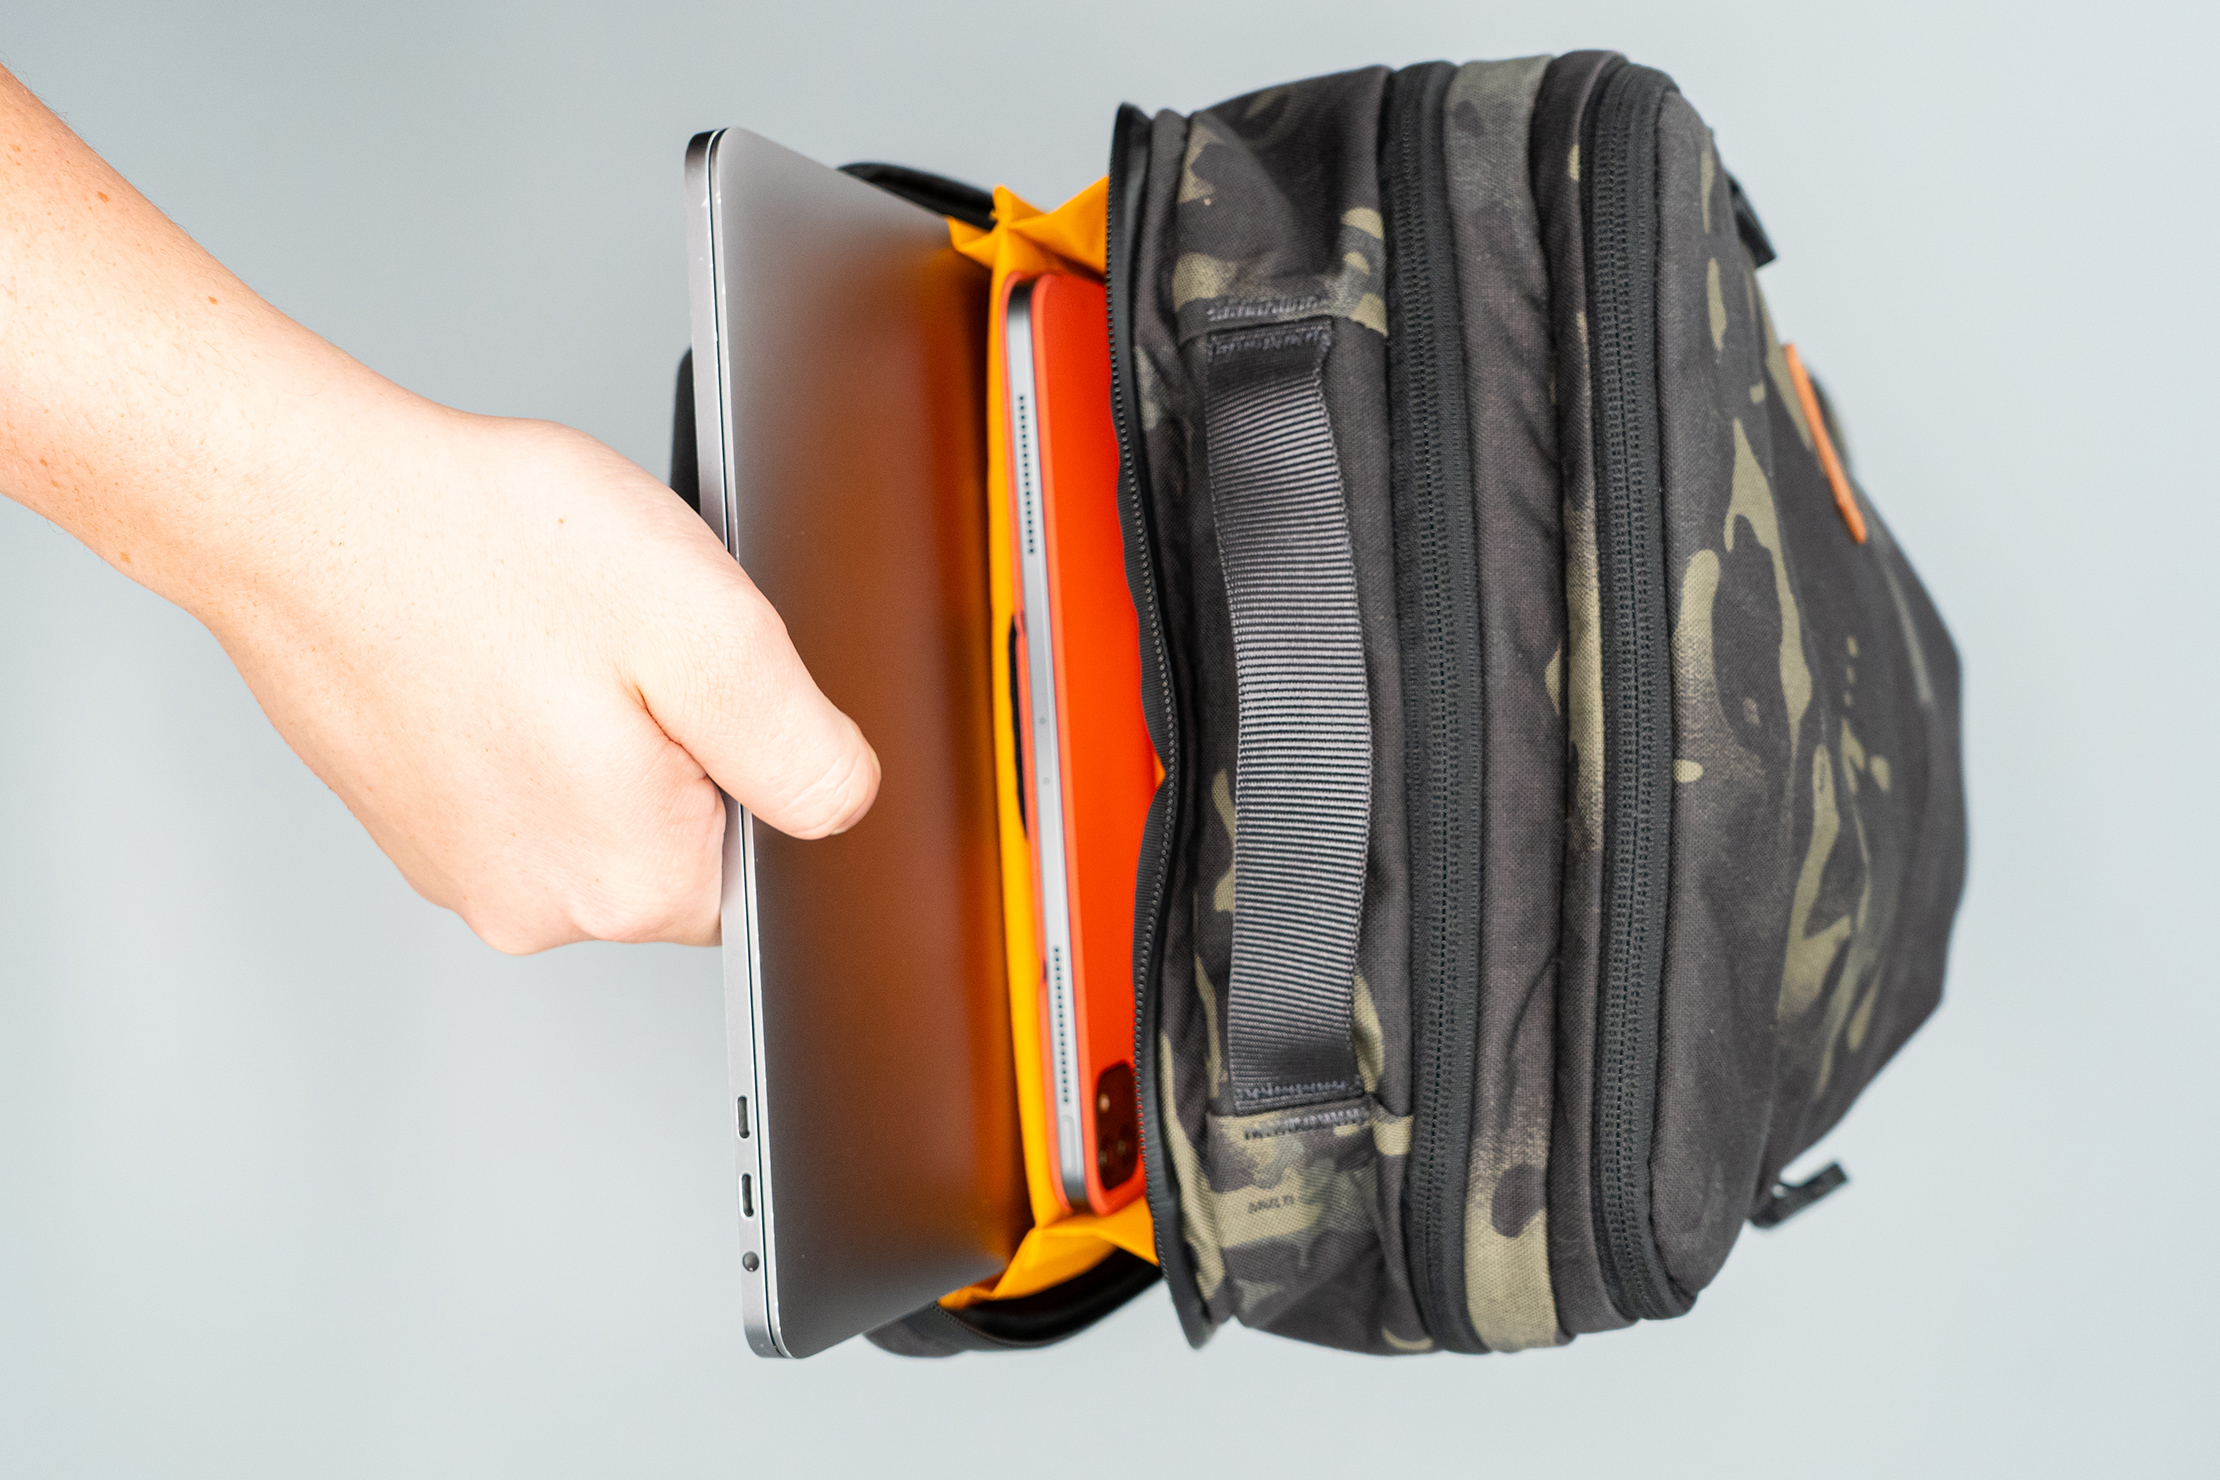 ADDAX-18 Backpack laptop compartment